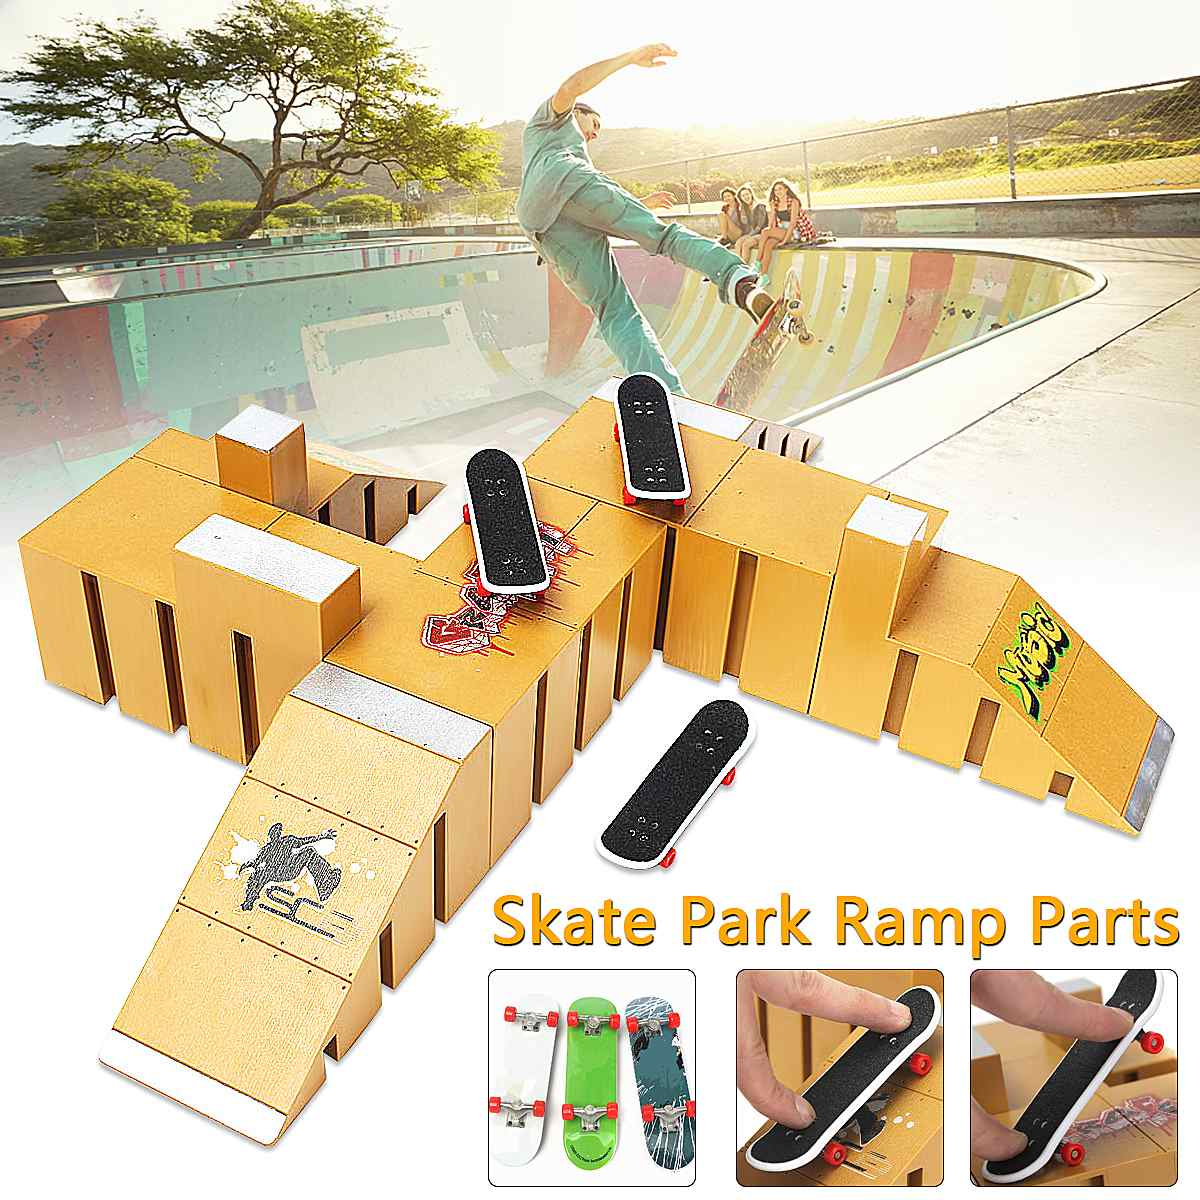 Skate Park Kit Ramp Parts For Tech Deck Fingerboard Excellent Gift For Extreme Sports Enthusiasts Sport Training 92D